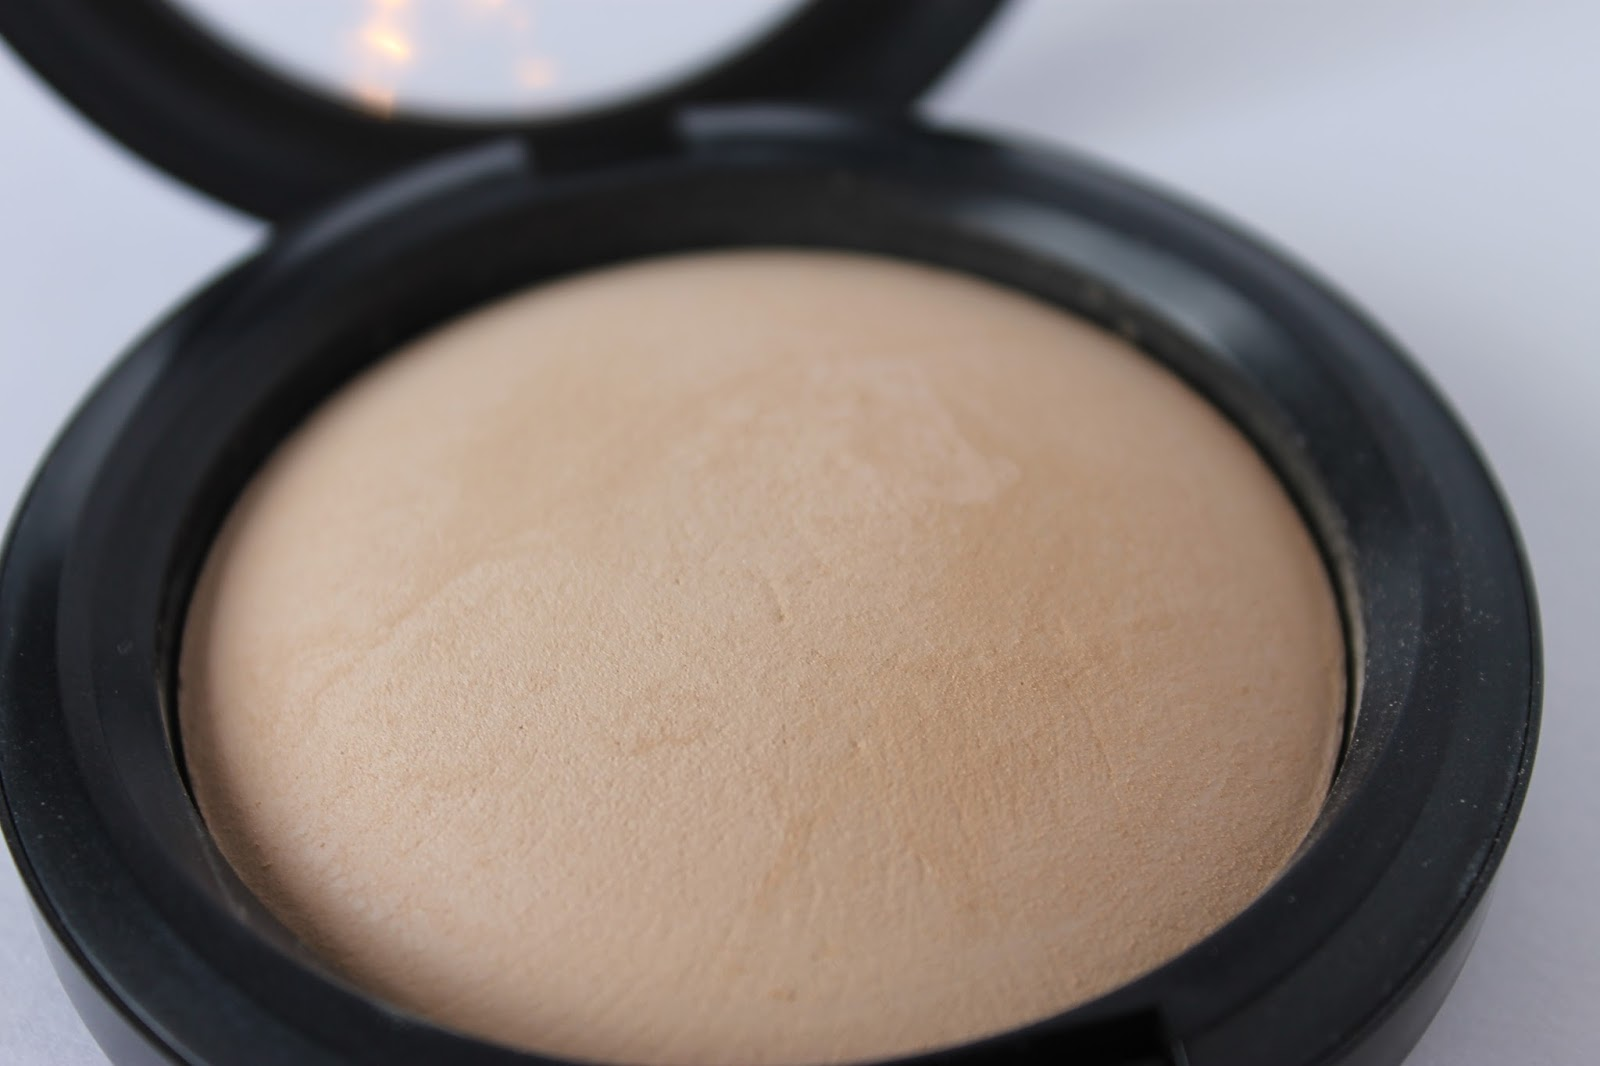 MAC Mineralize Skinfinish Natural Review